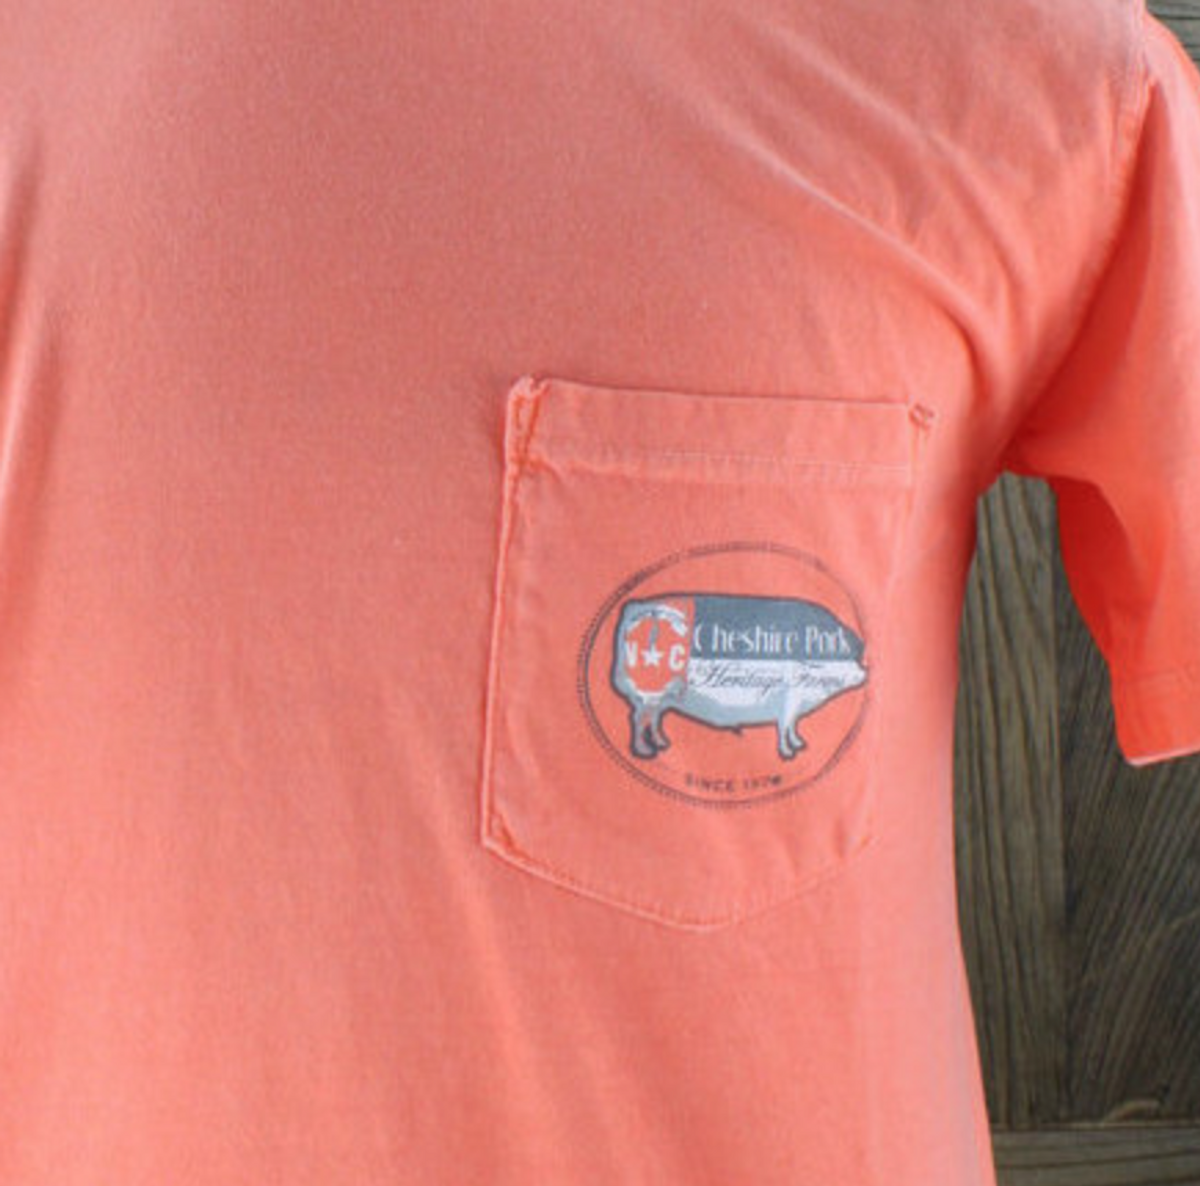 For the Love of Pork T-Shirts